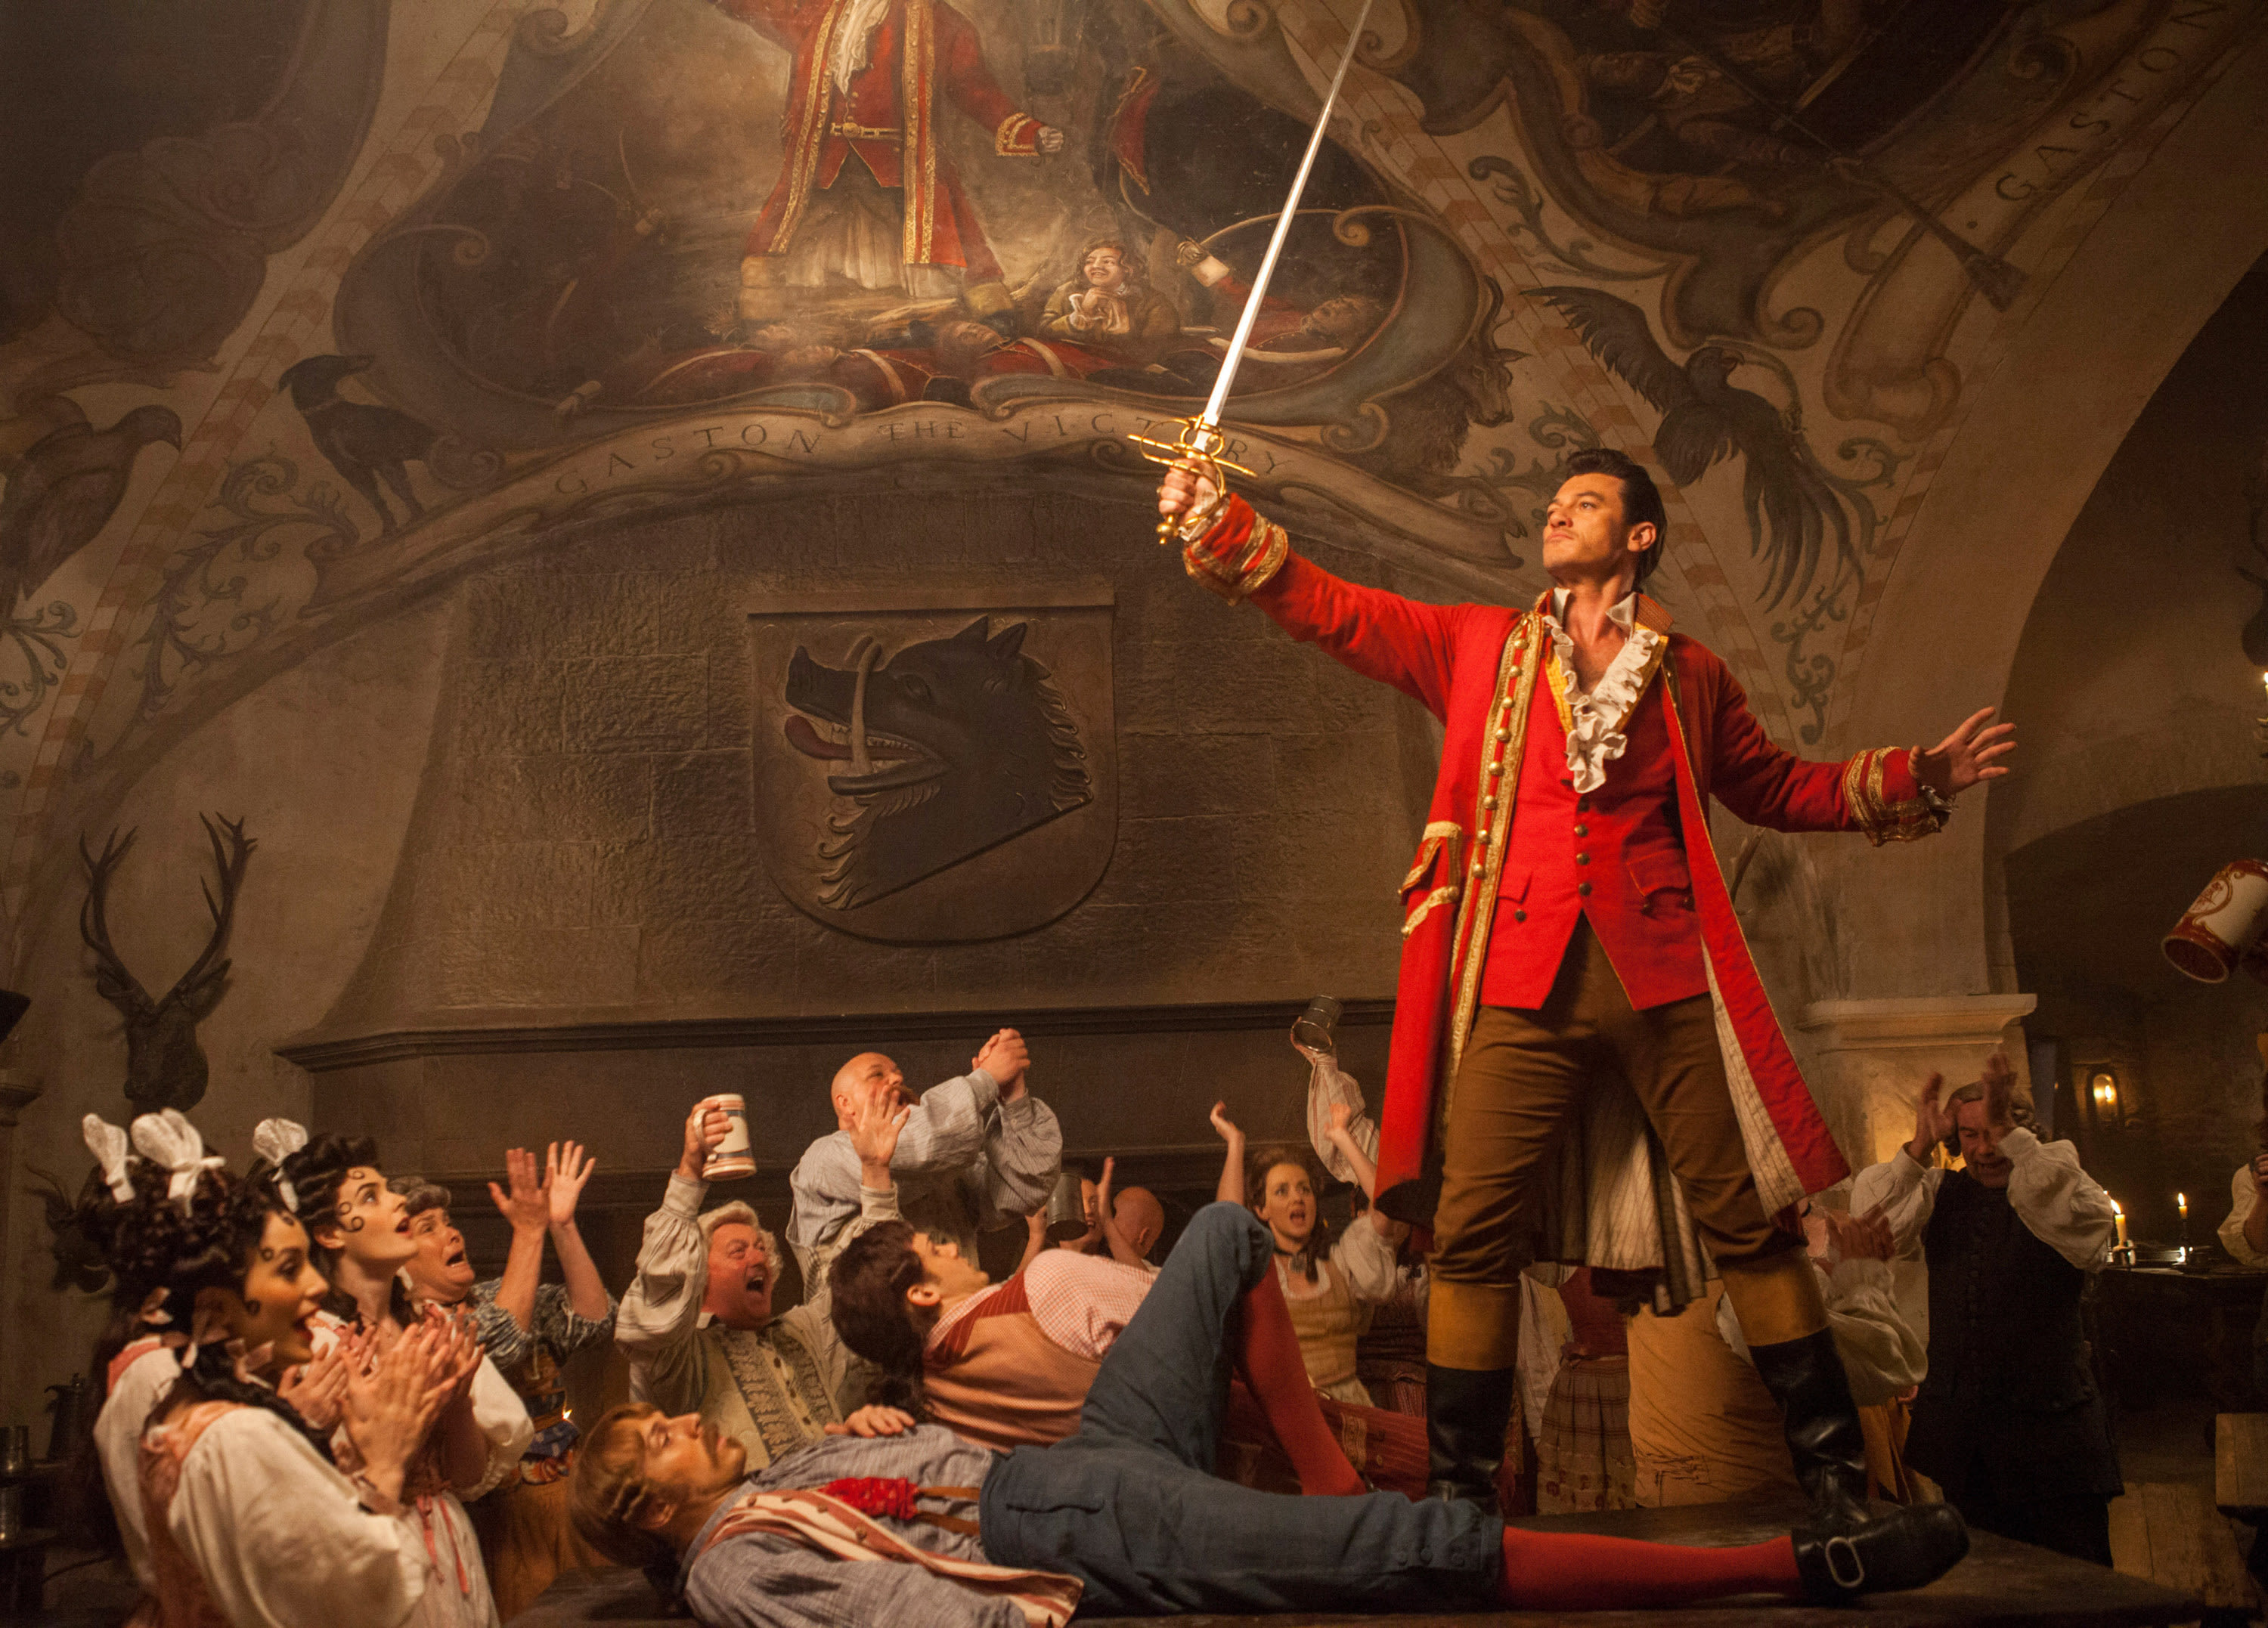 Gaston in the live-action Beauty and the Beast